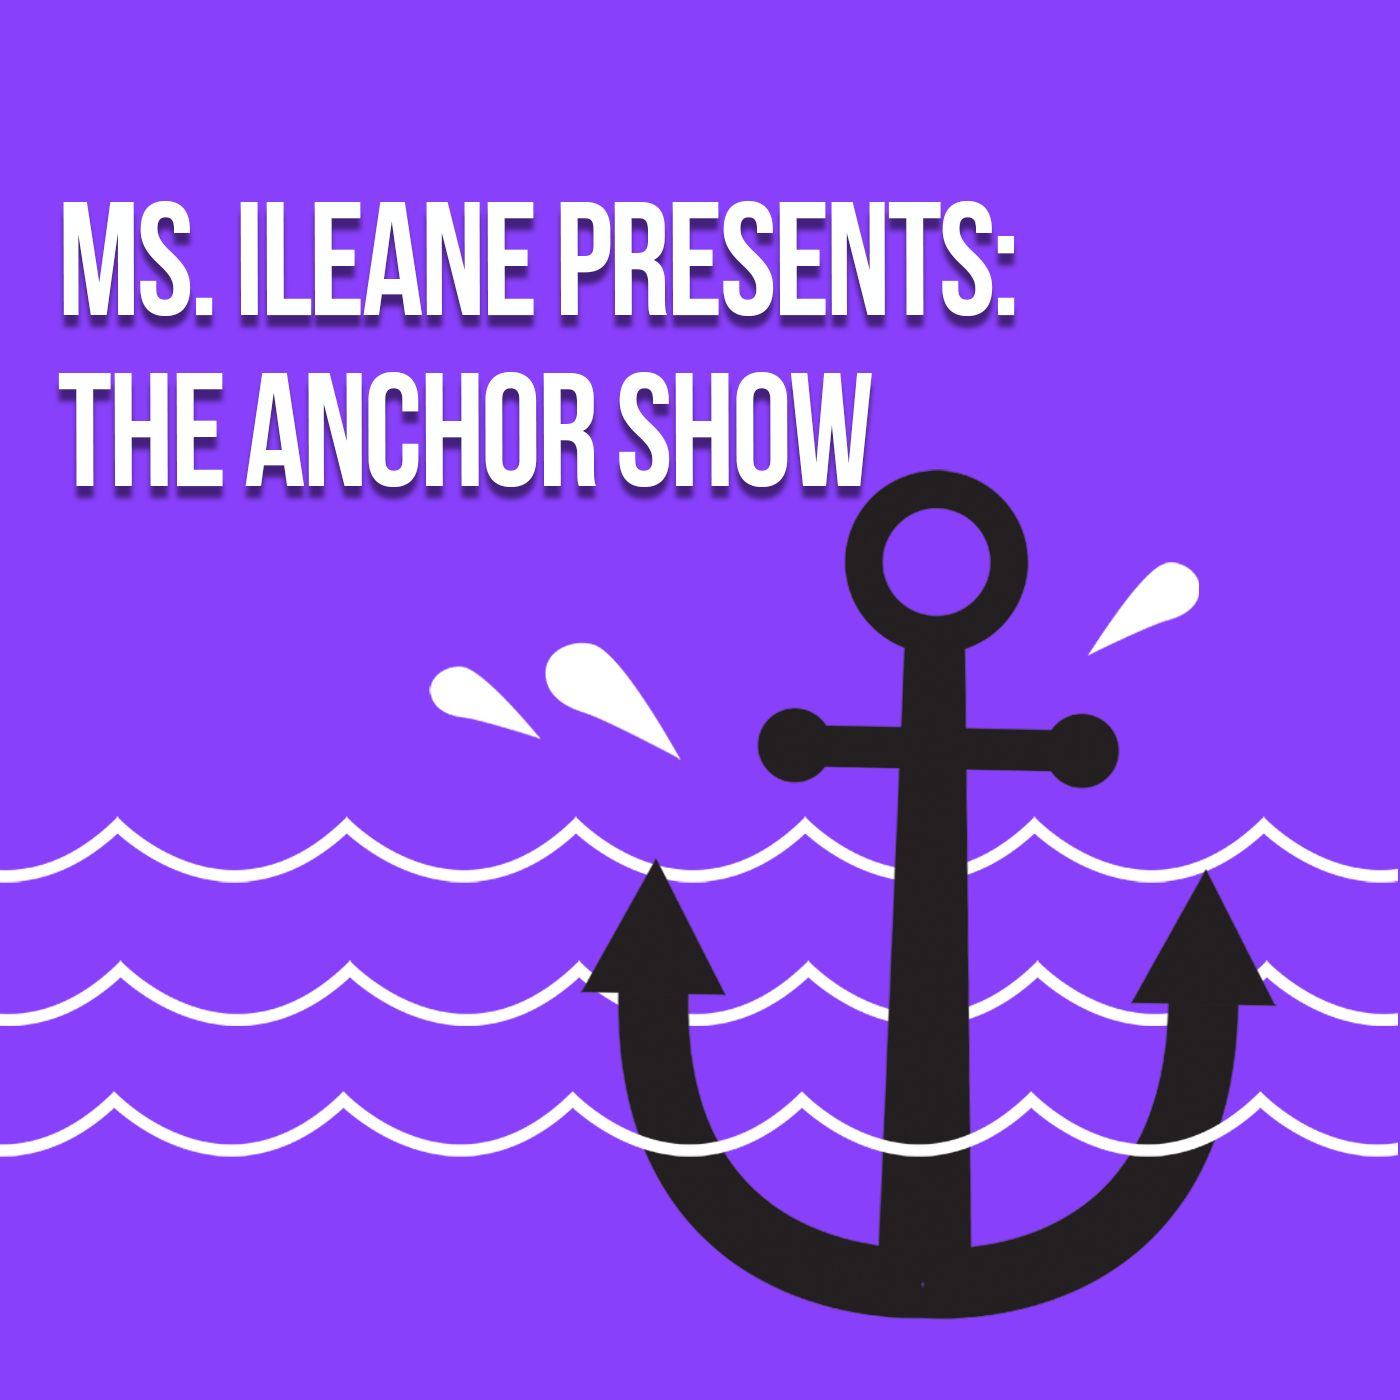 Ms Ileane Presents The Anchor Show album art